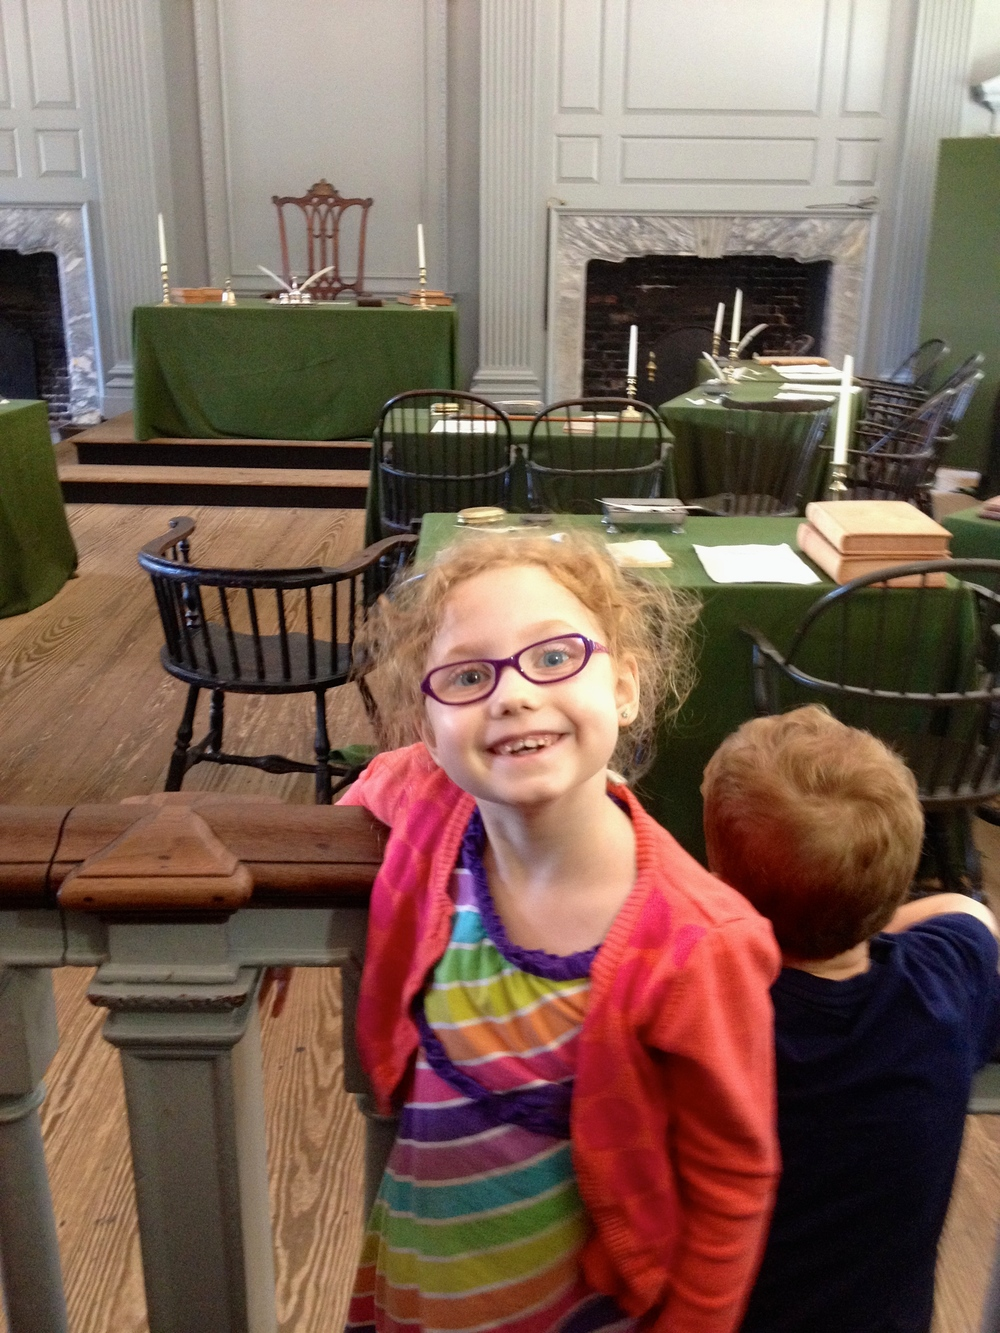 This is the room where a lot of big decisions were made in Independence Hall. We were most excited to see the chair with the rising sun that George Washington sat in during the creation of our Constitution!